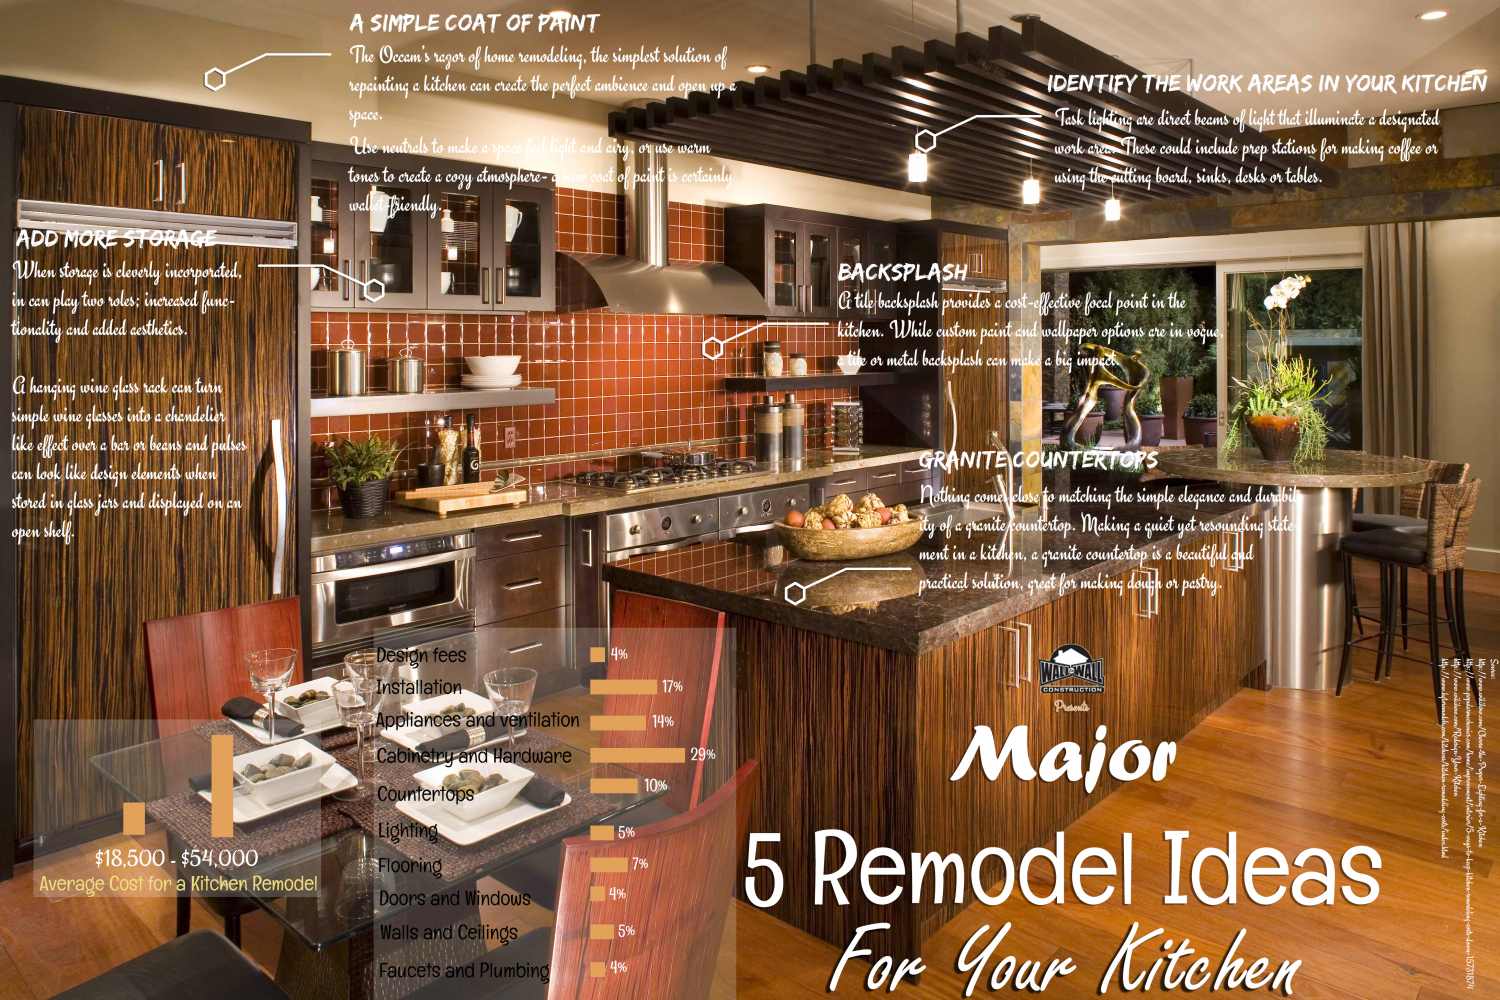 Major 5 Remodel Ideas For Your Kitchen